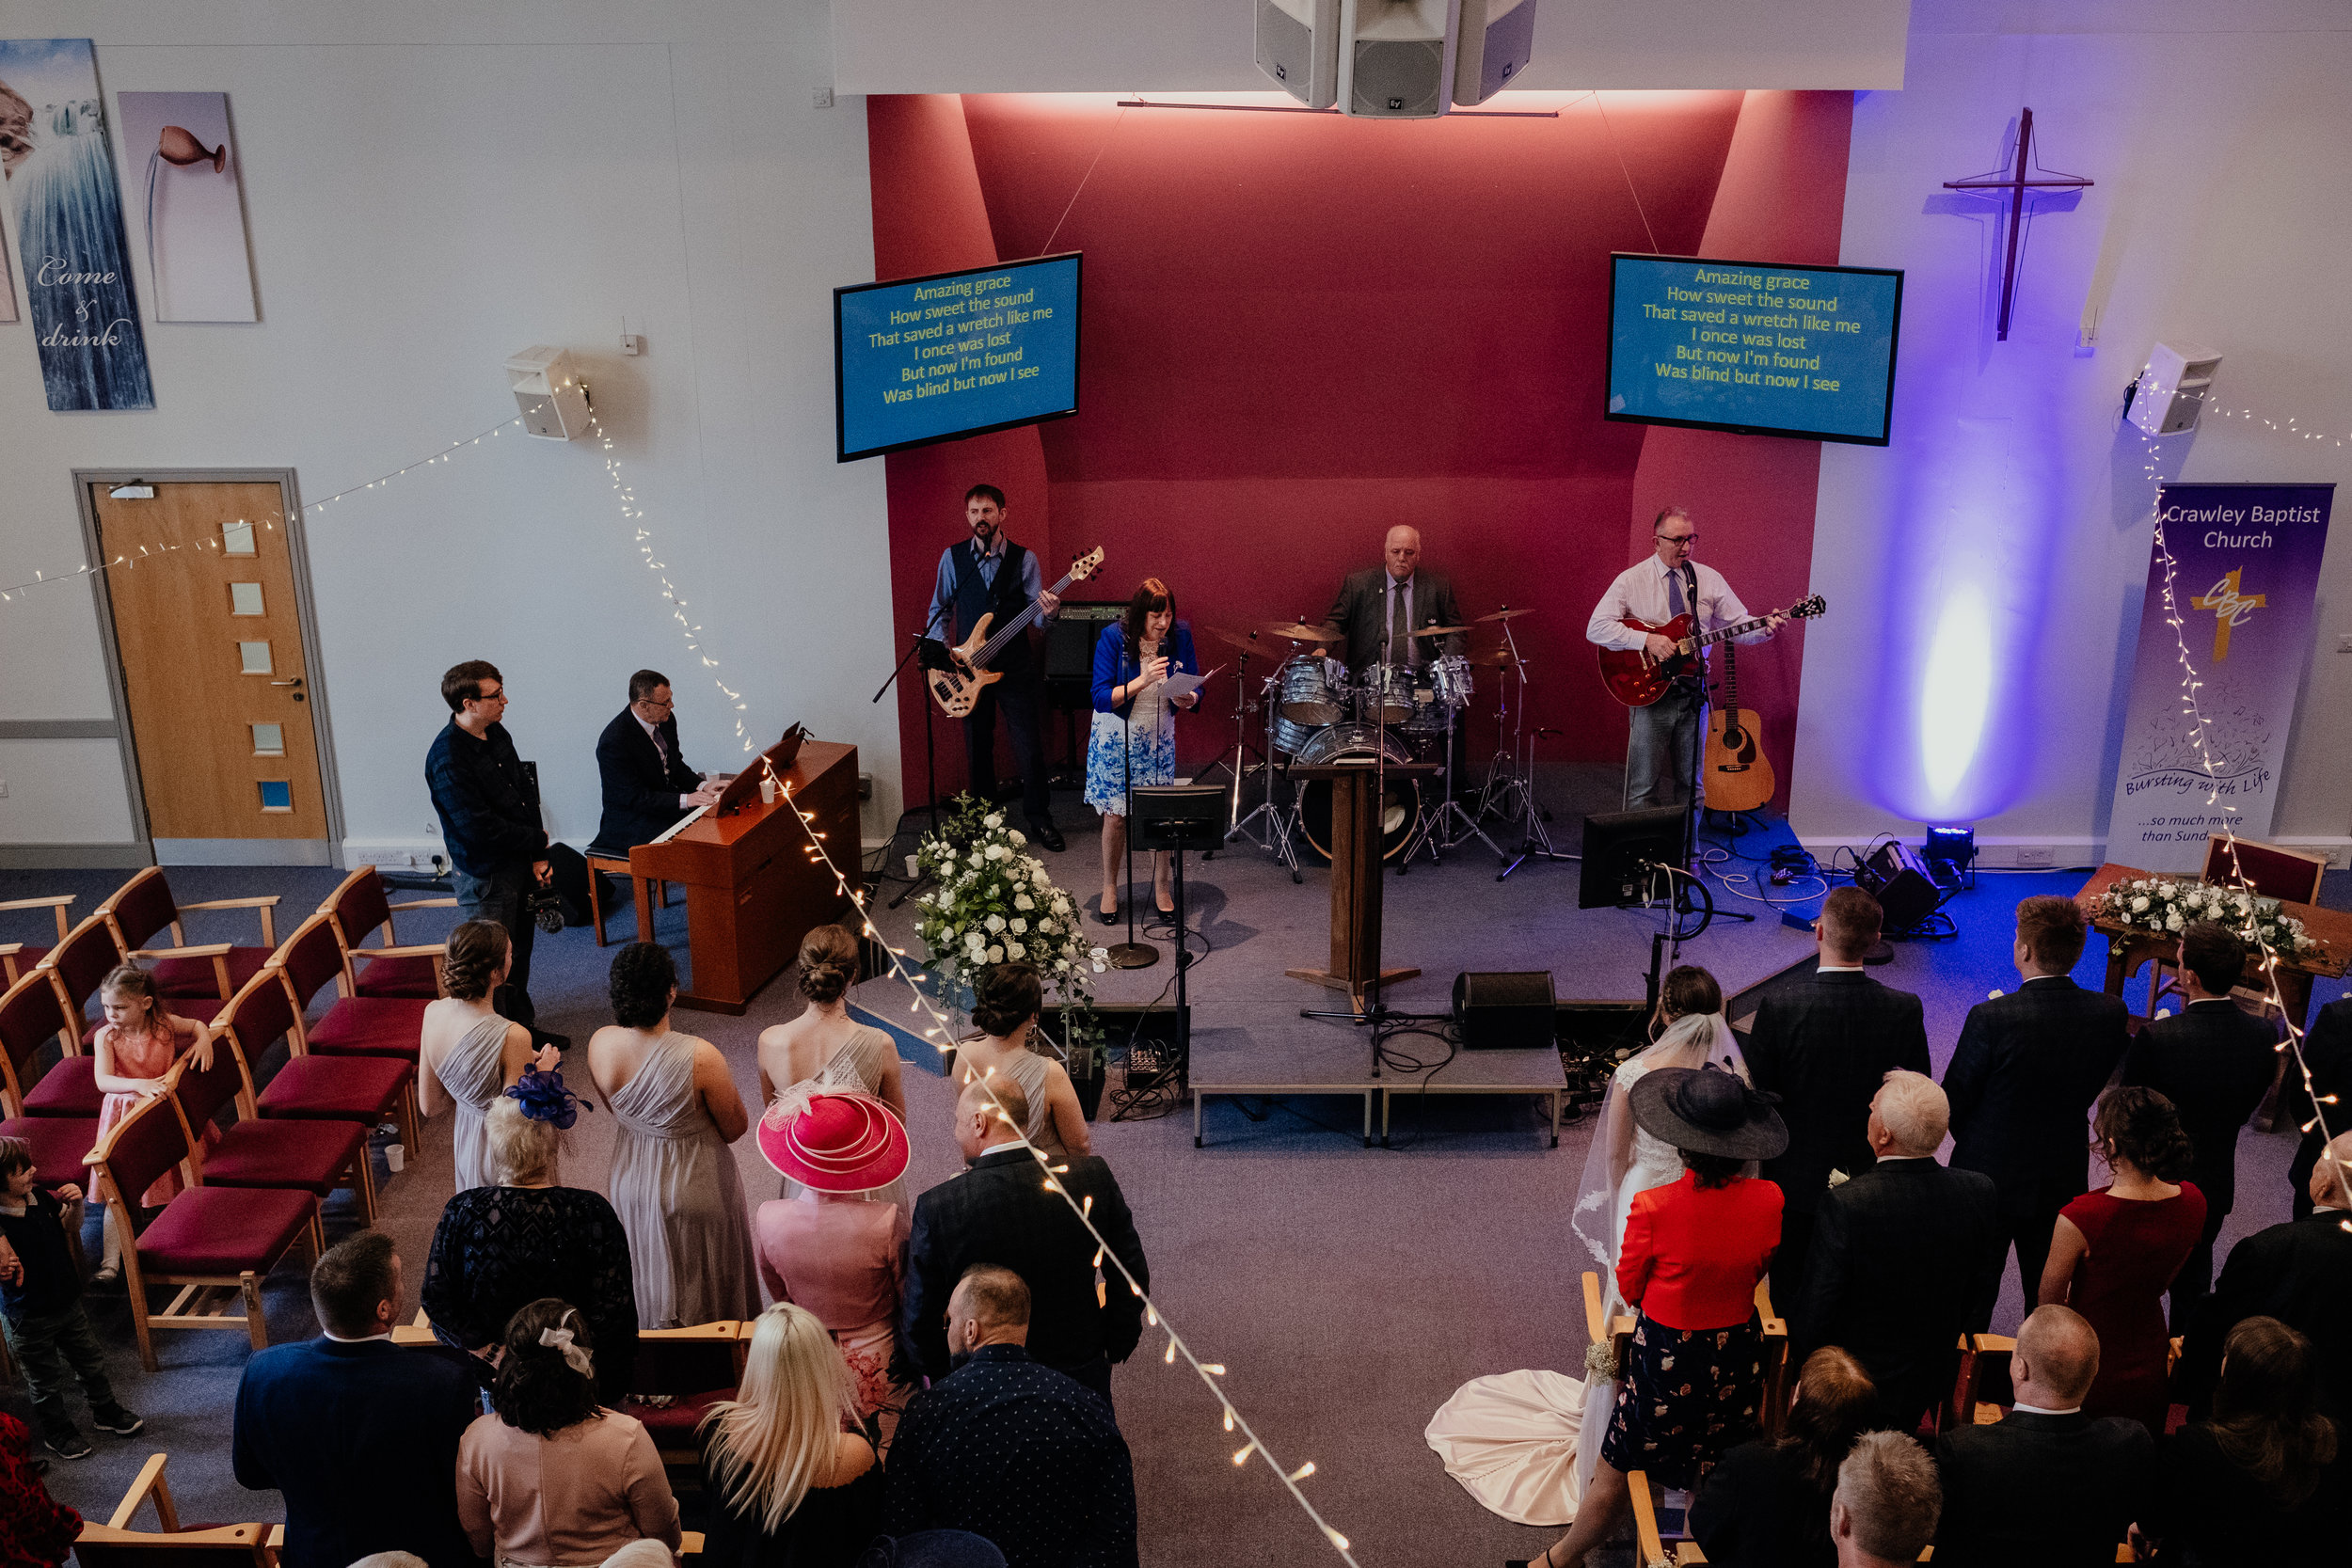 Bride and Groom and guests singing along to hymn performed by band in church